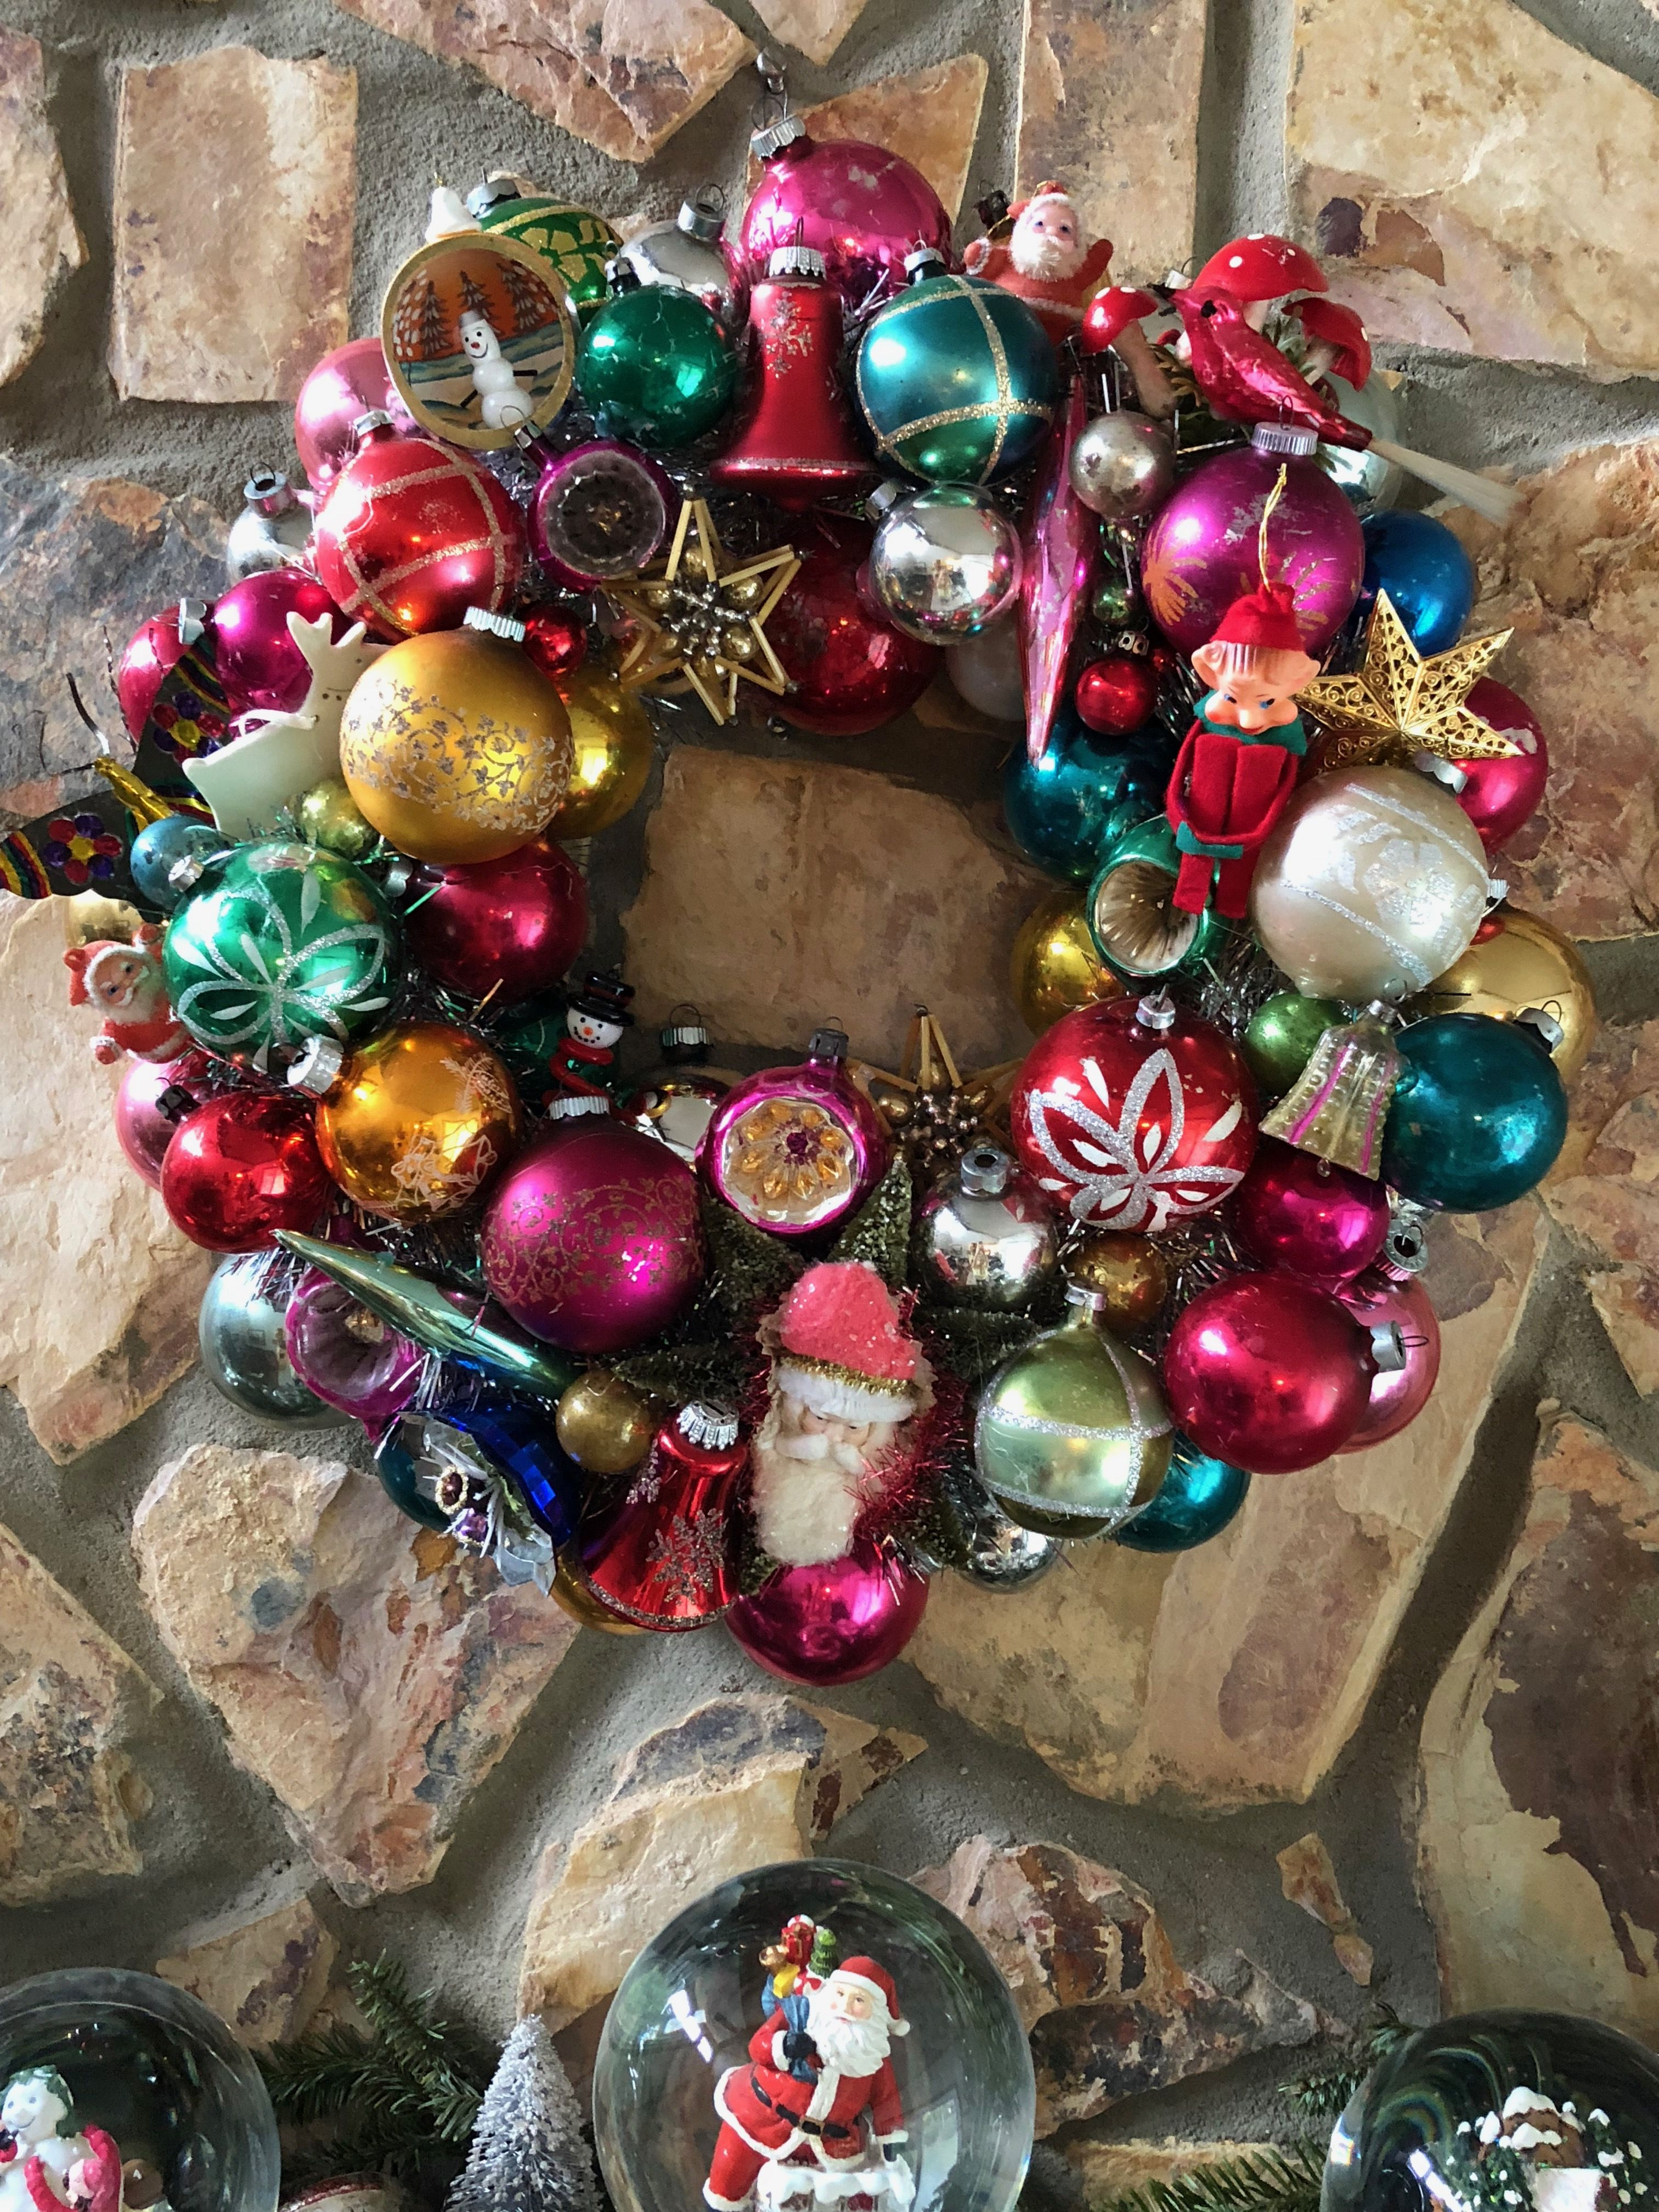 Pin By Carol Harms On Vintage Ornament Wreaths And Mantles Vintage Ornament Wreath Ornament Wreath Vintage Ornaments